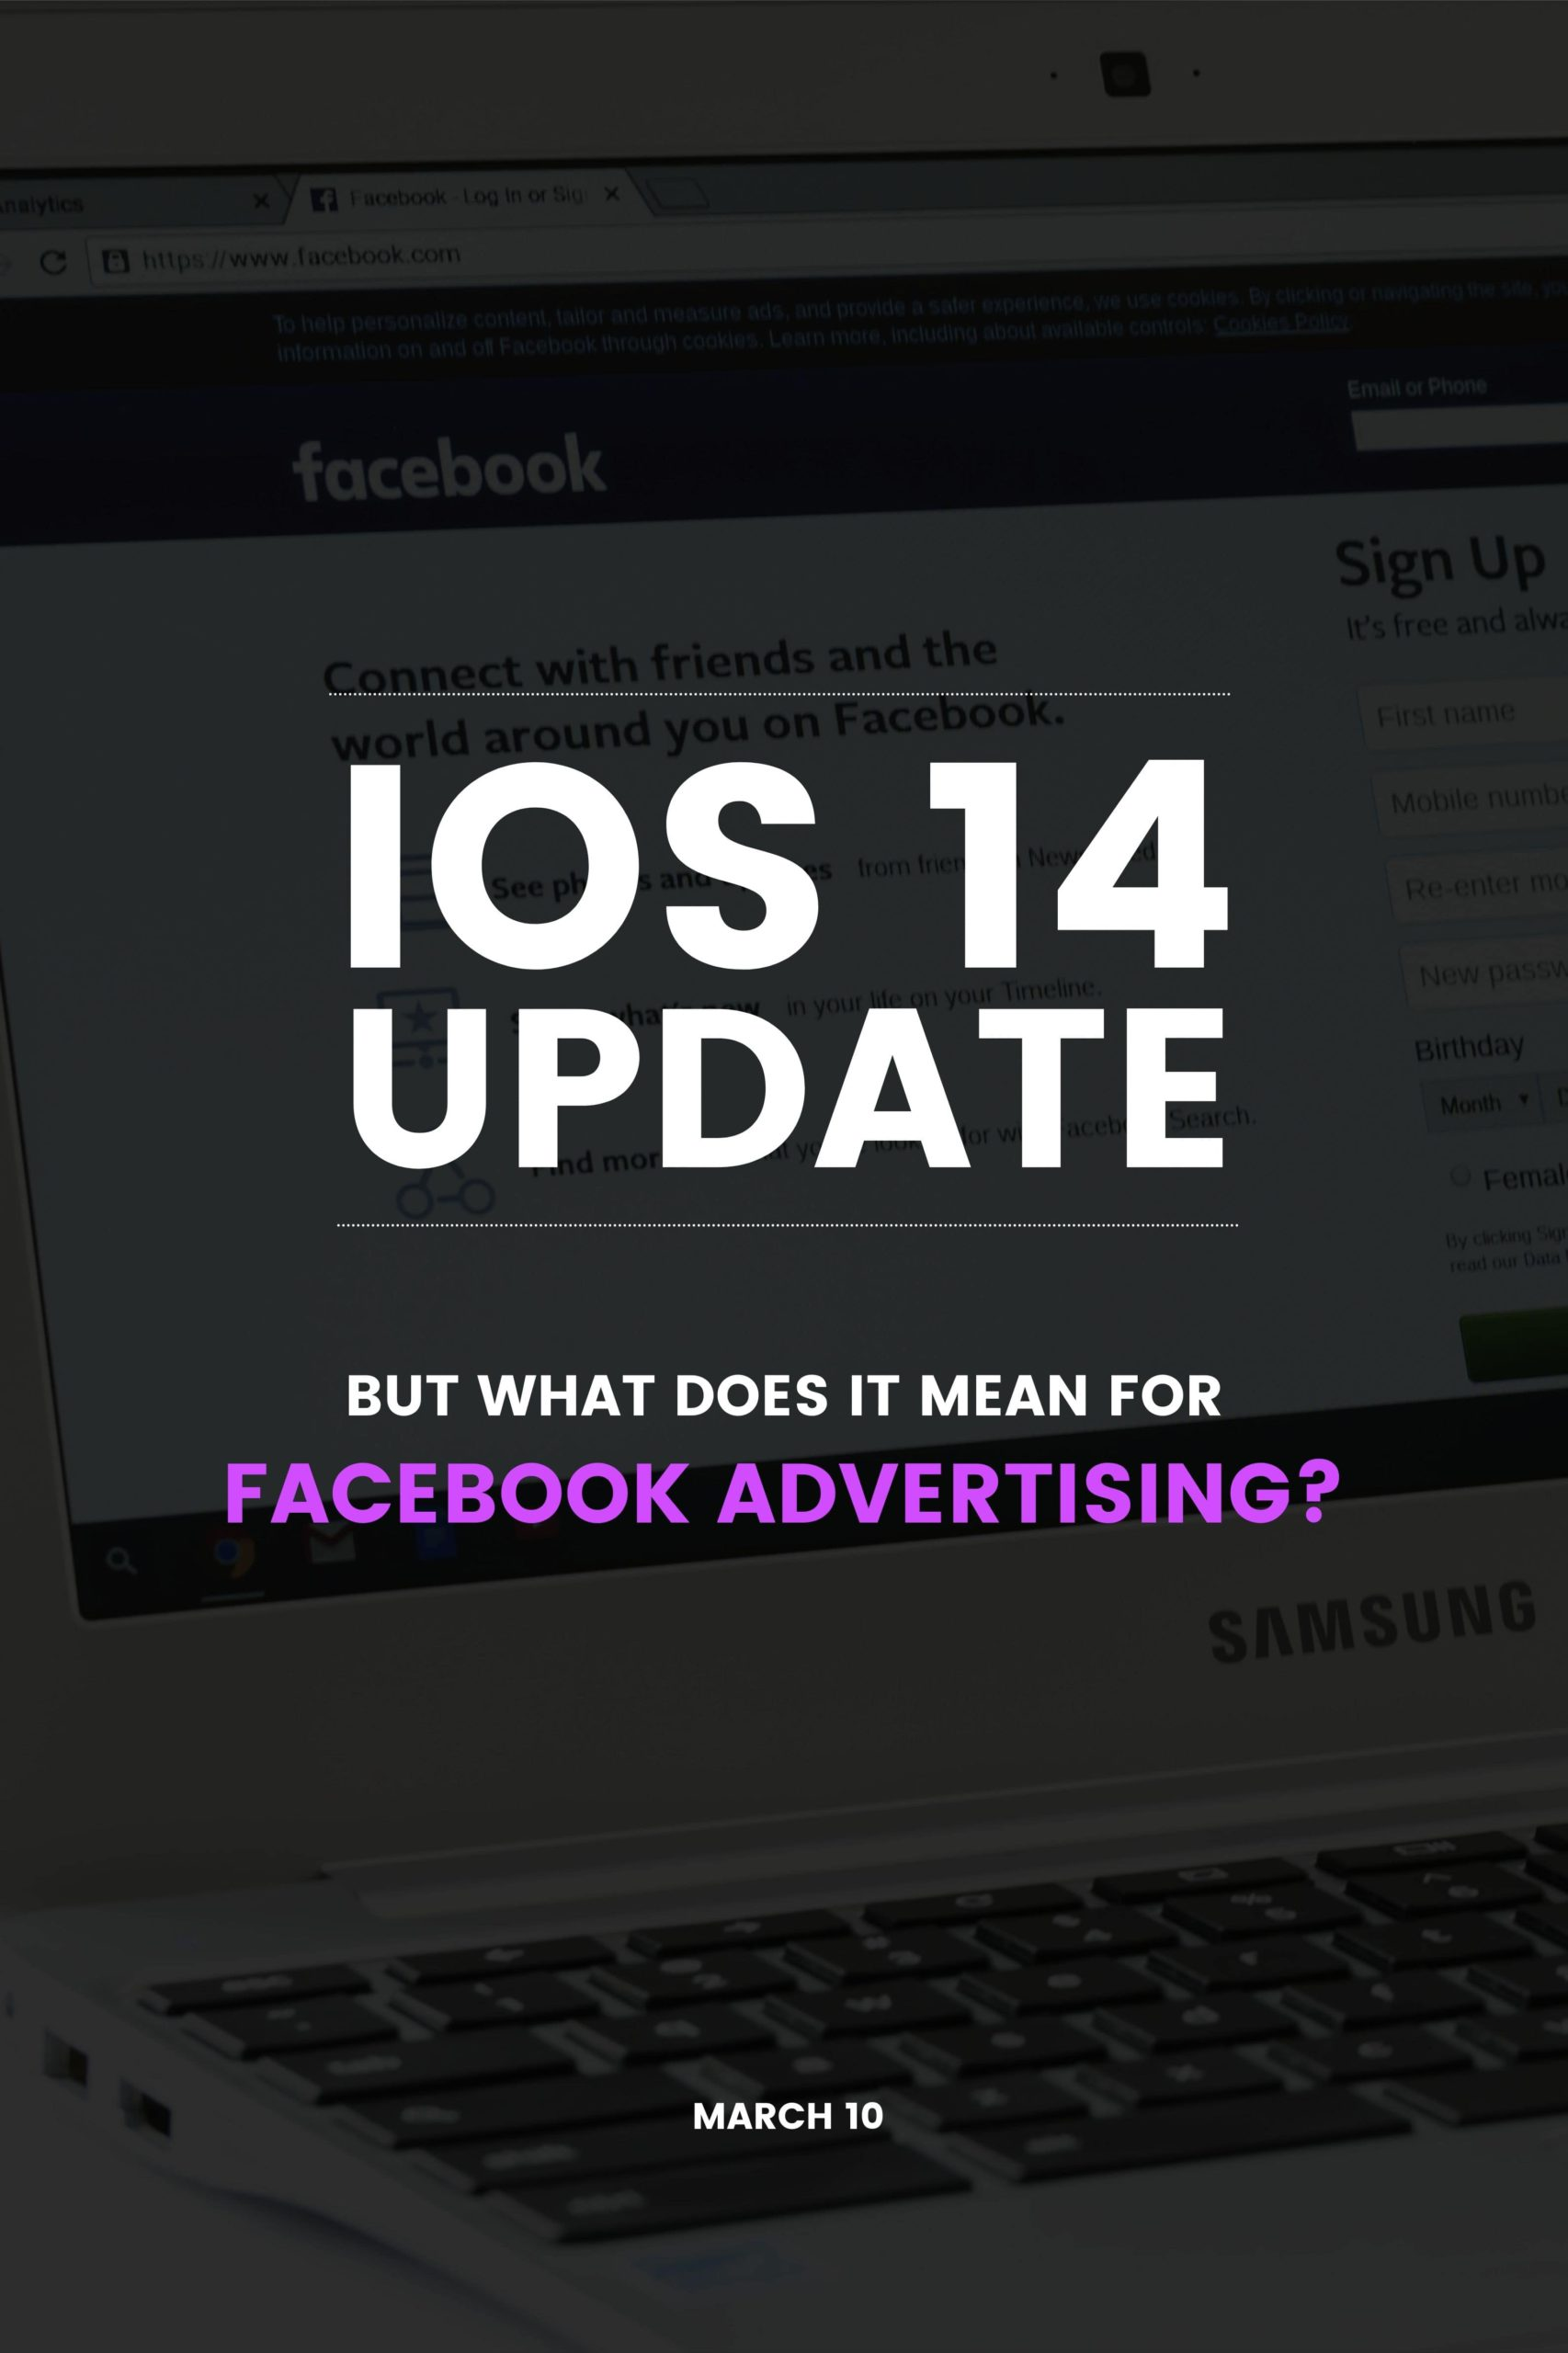 iOS 14 Update: Facebook advertising